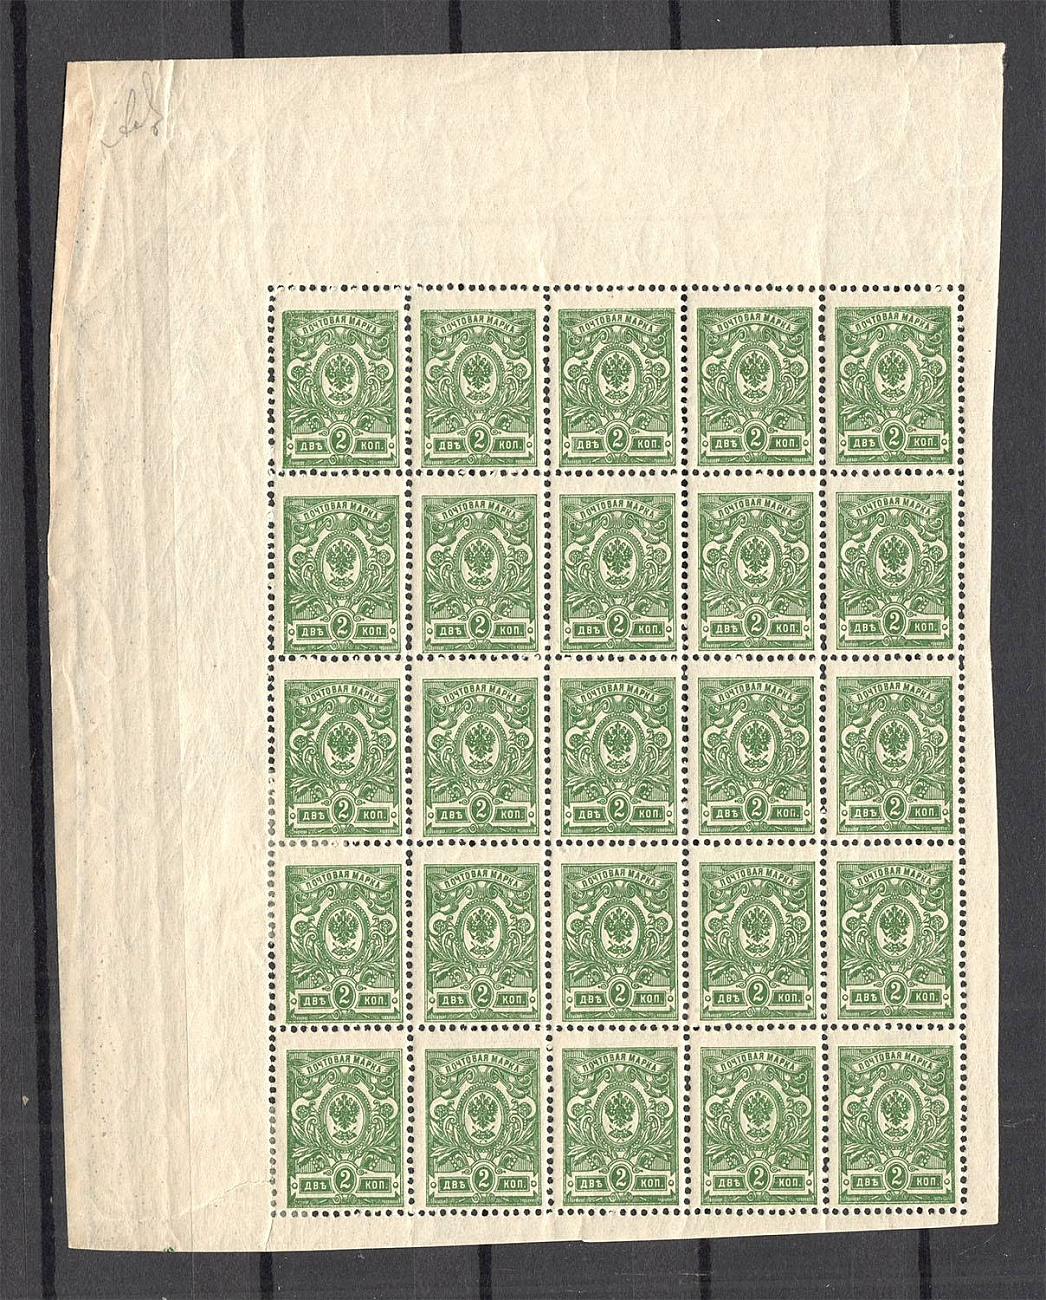 Lot 18 - Russia: Empire & Offices Abroad blocks -  OldLouis Auctions Russia: Empire & Offices Abroad - Rare Stamps Auction №8